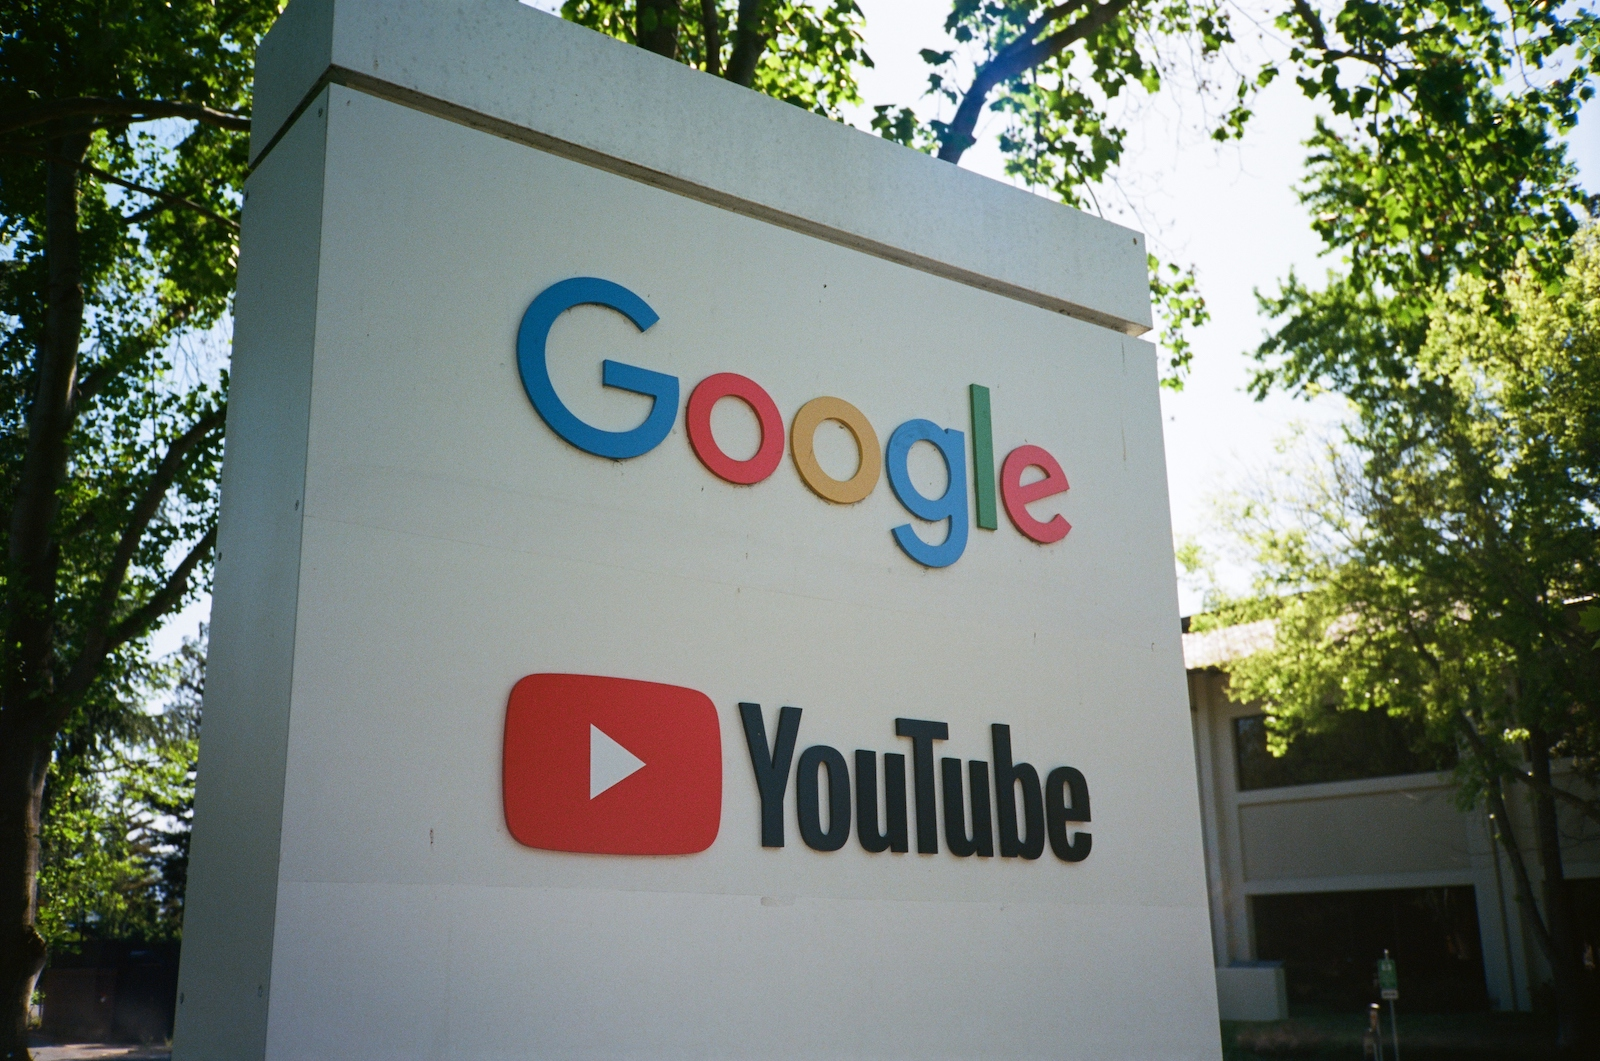 Sign with logos for Google and the Google owned video streaming service YouTube at the Googleplex, the Silicon Valley headquarters of search engine and technology company Google Inc in Mountain View, California, April 14, 2018. (Photo by Smith Collection/Gado/Getty Images )